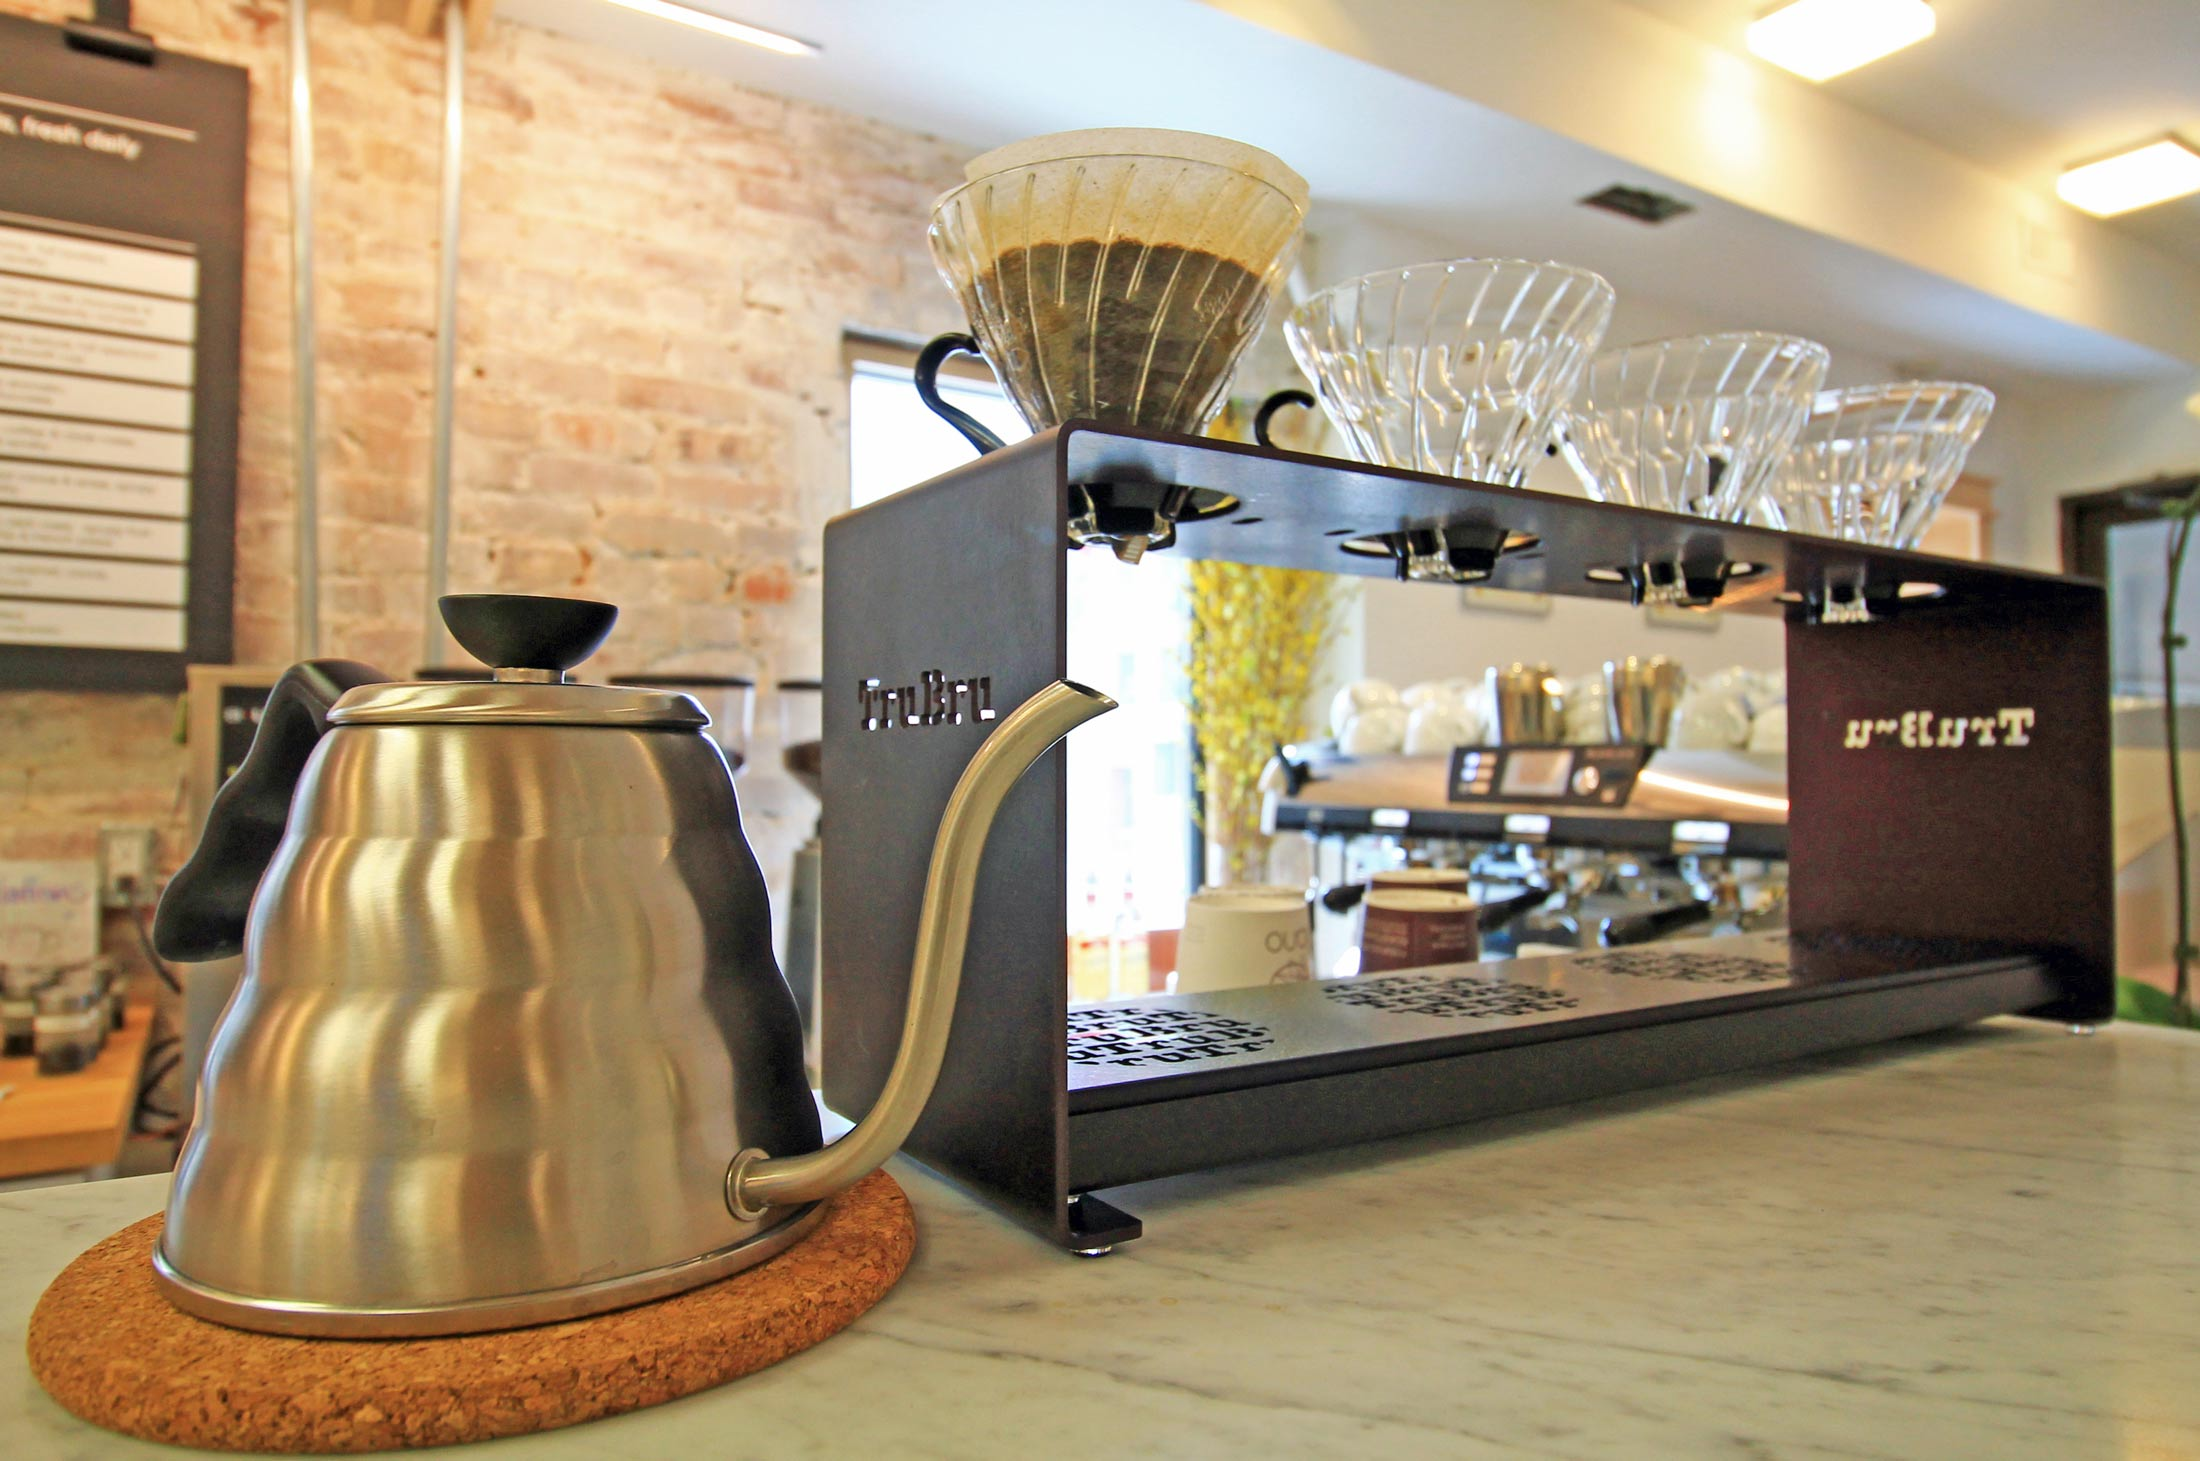 Milano Coffee - Focal Journey (by Gustavo Espinola)